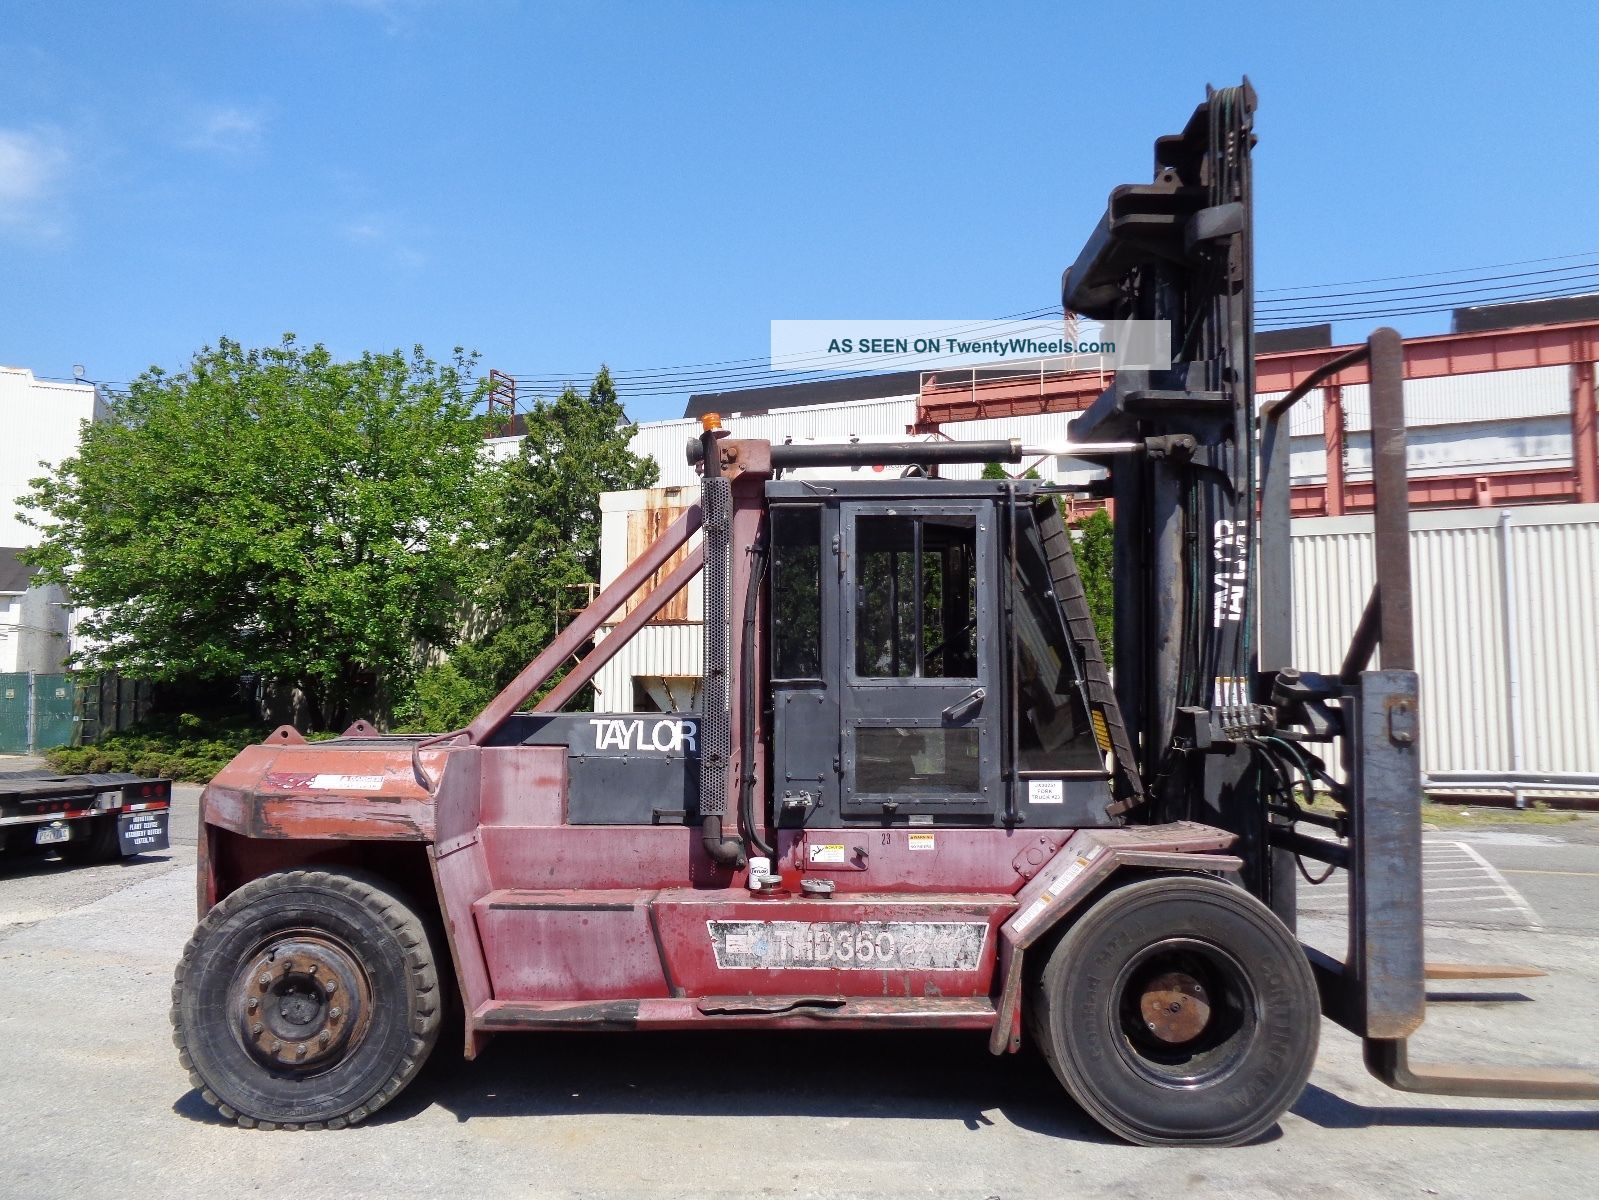 Taylor Thd360l 36,  000ln Forklift - Enclosed Cab - Side Shift - Fork Positioners Forklifts photo